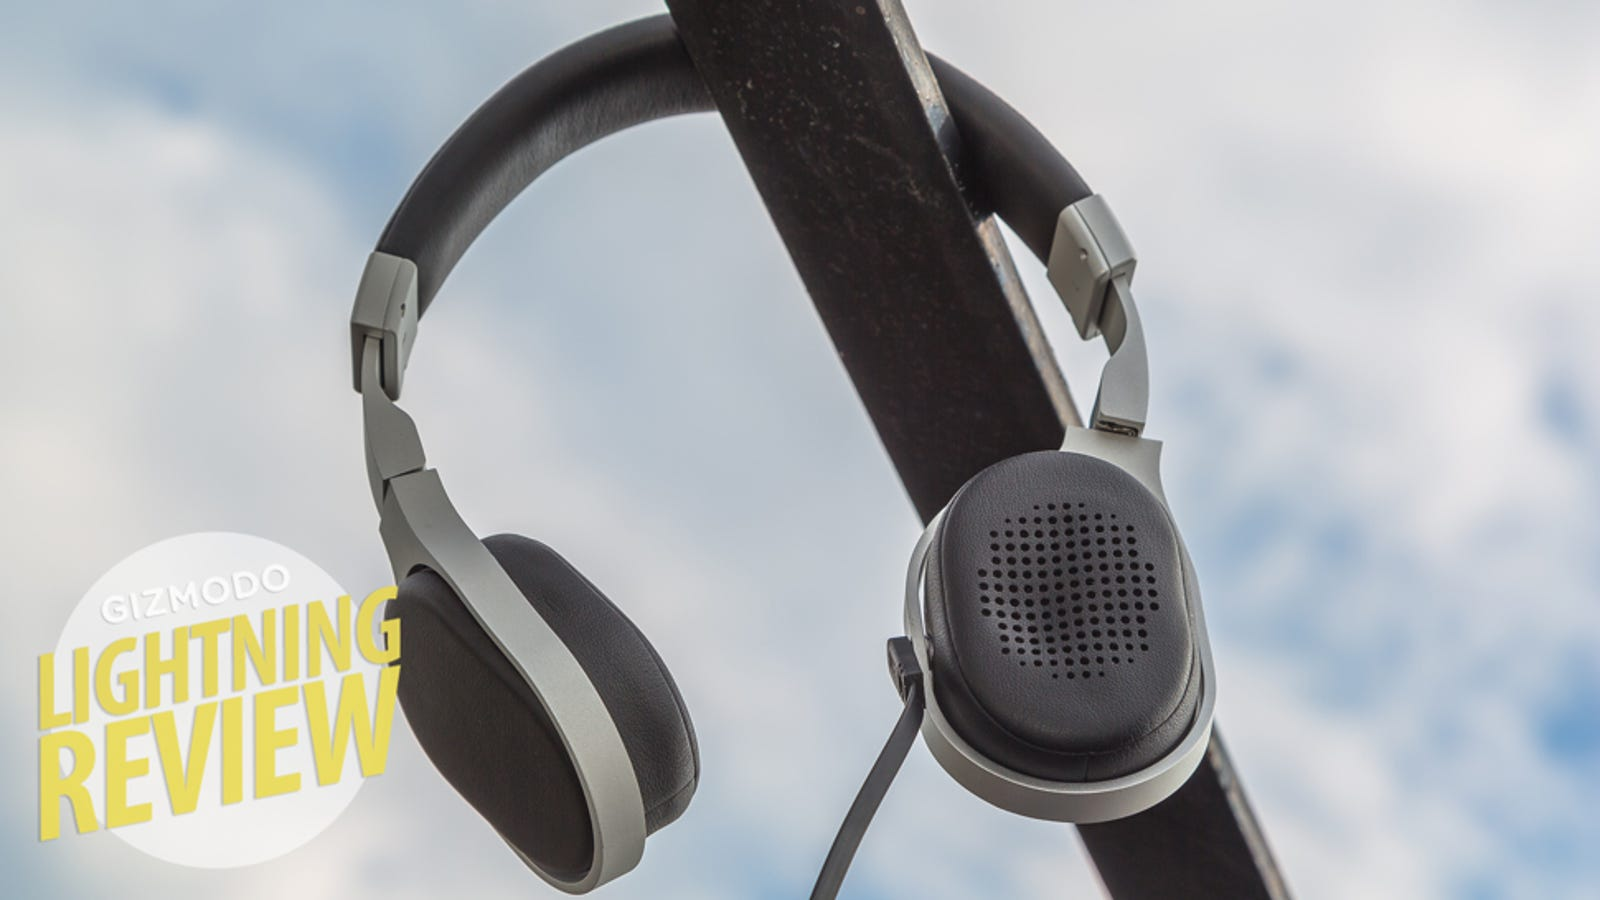 lightweight wireless headphones - KEF M500 Headphone Review: Perfect Balance of Sound and Comfort